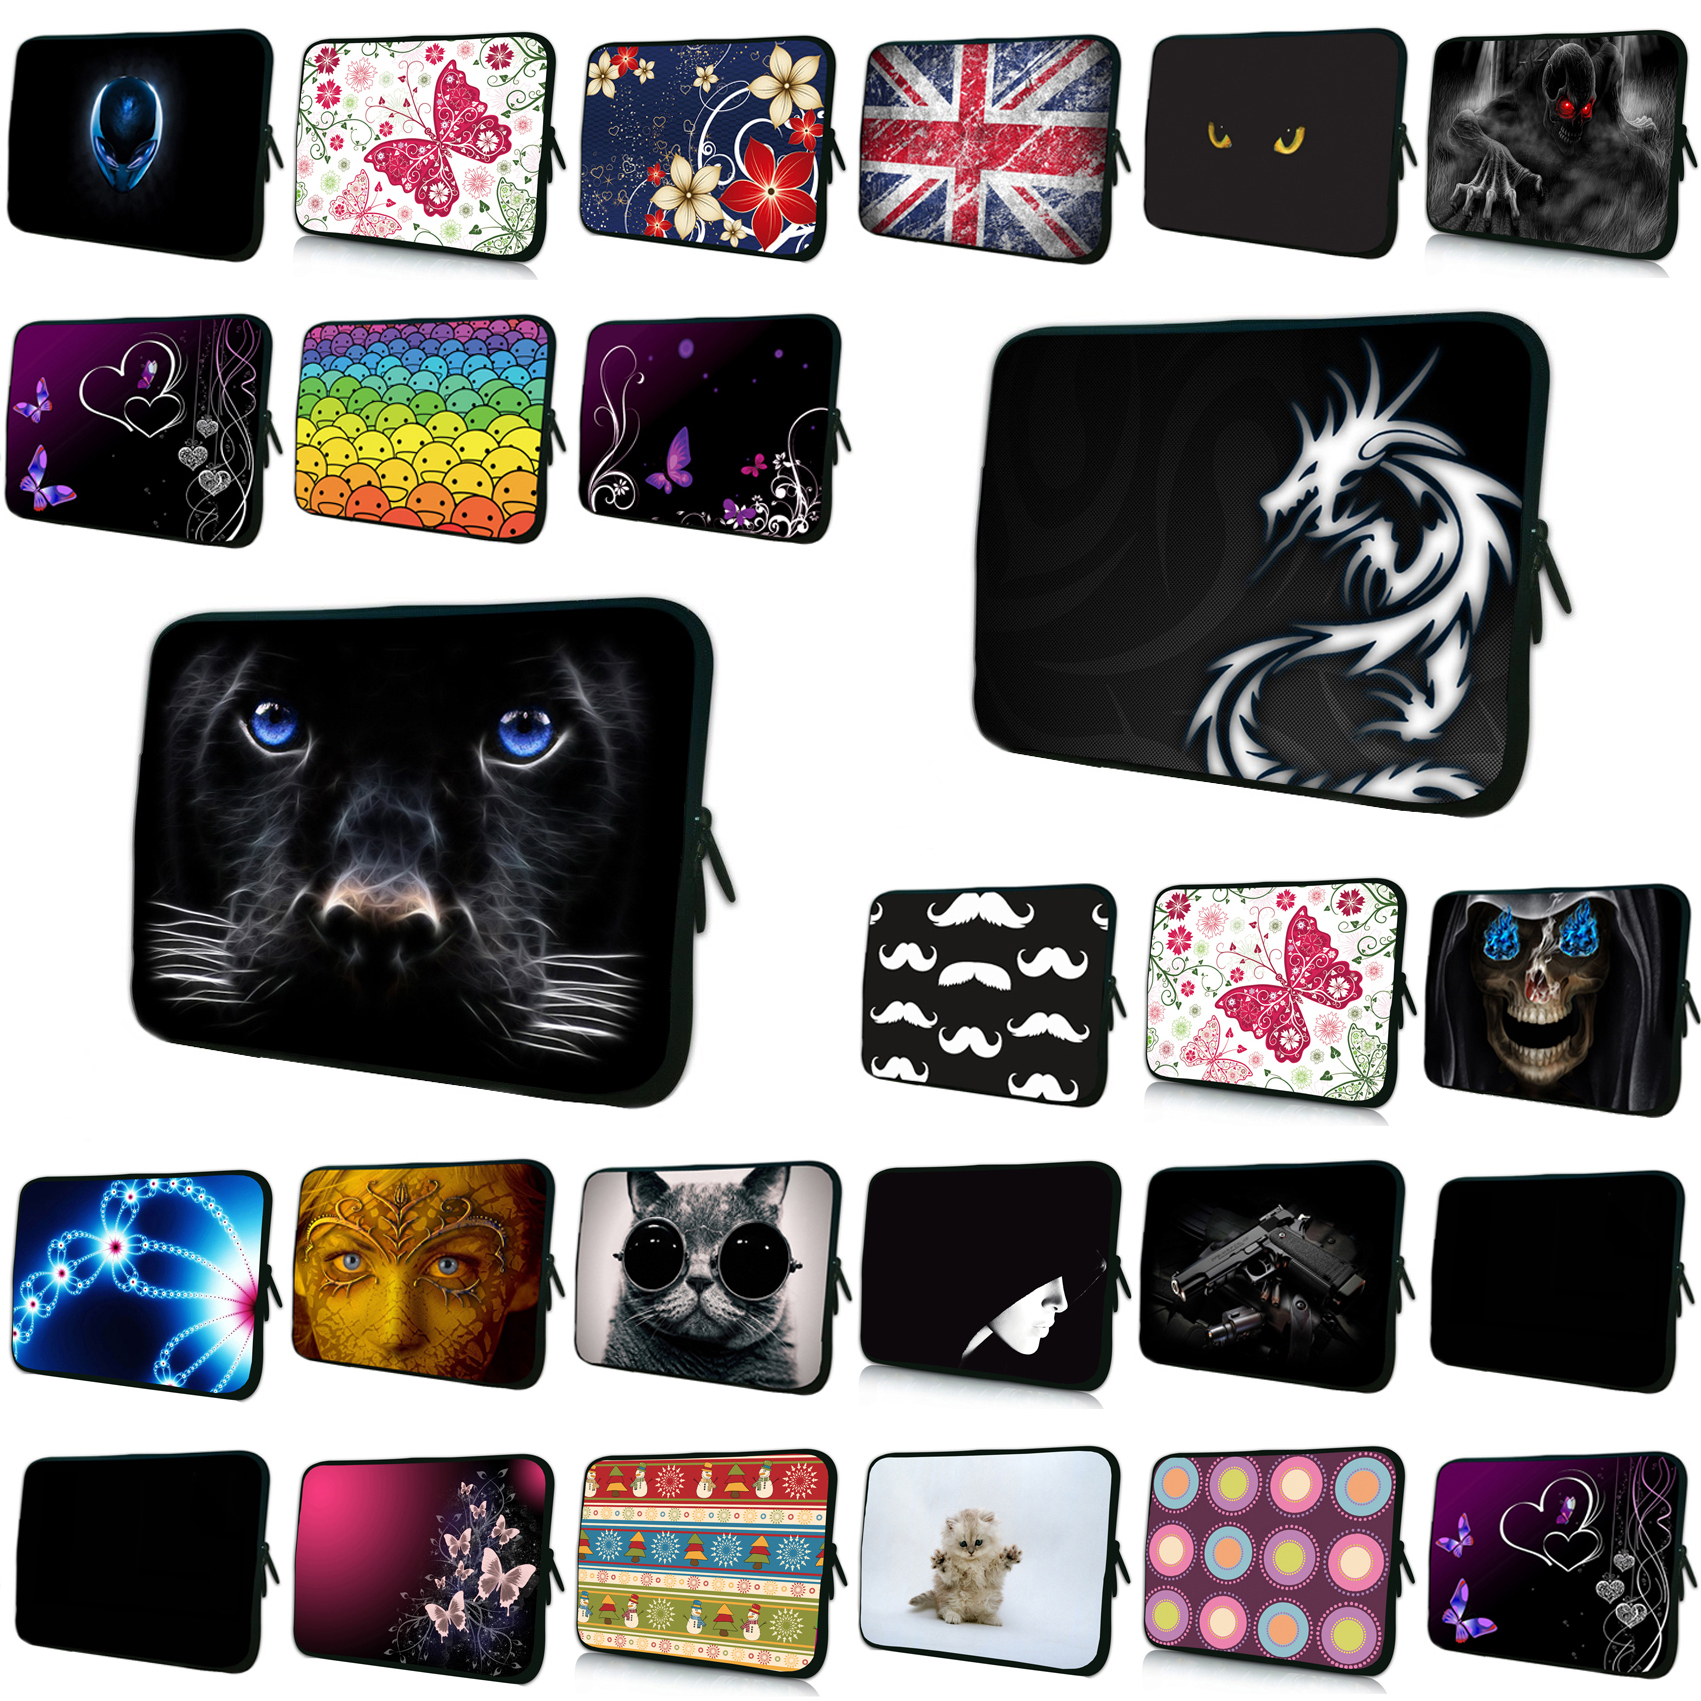 Notebook Laptop PC Inner Bags Cases For 10 11.6 12 13 14 15 15.6 16 17